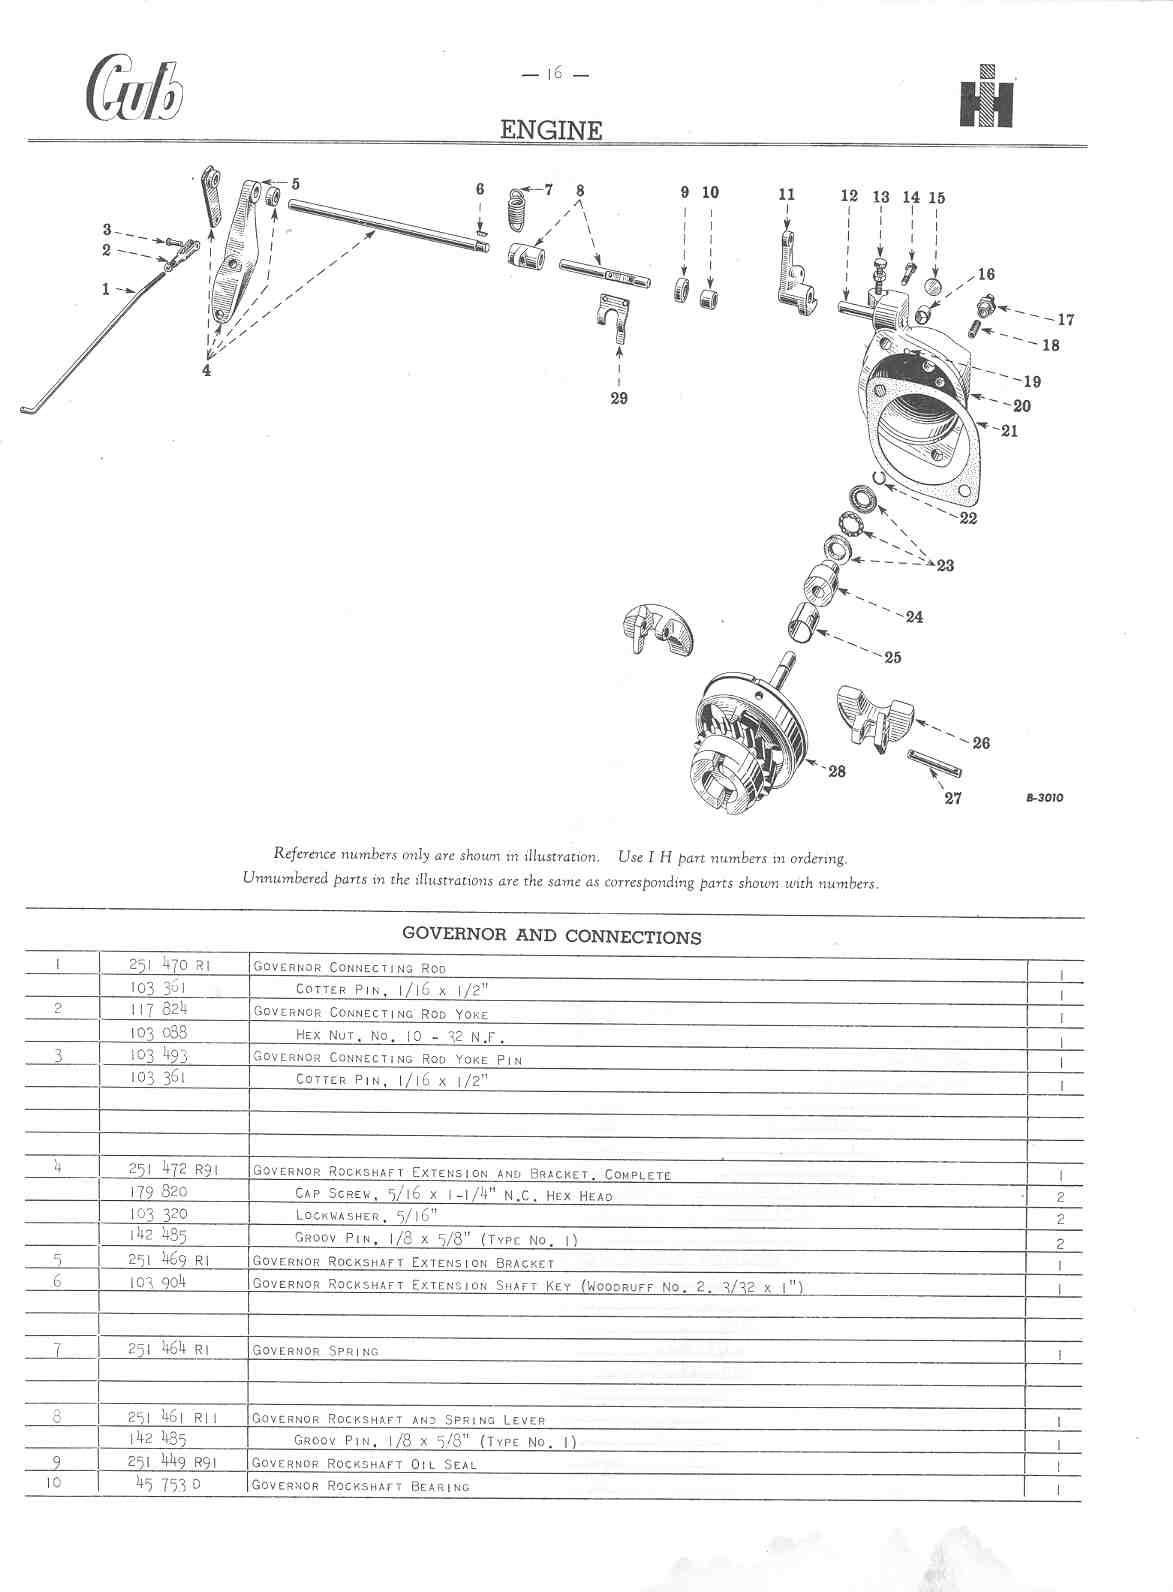 farmall a wiring diagram 2000 dodge neon coil cub view 1948 international 4300